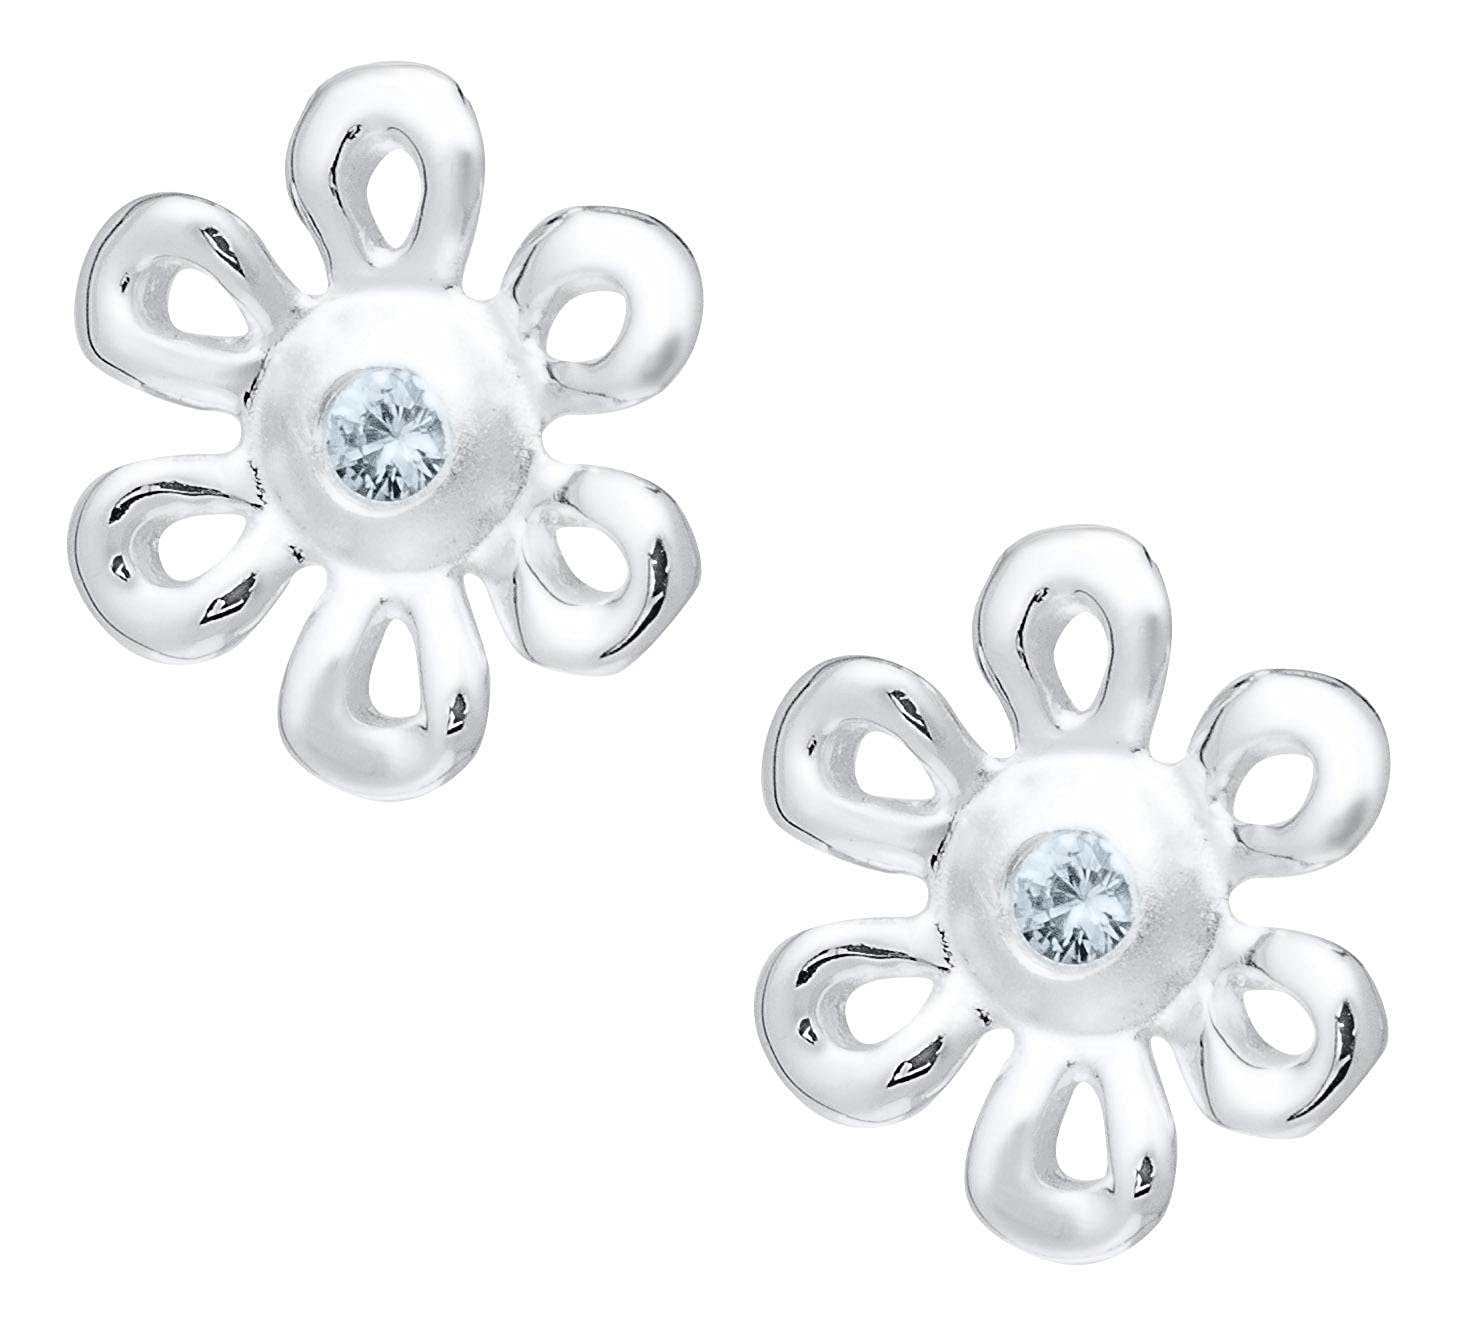 JAMBS JEWELRY STERLING FLOWER WITH DIAMOND EARRINGS FOR CHILDREN